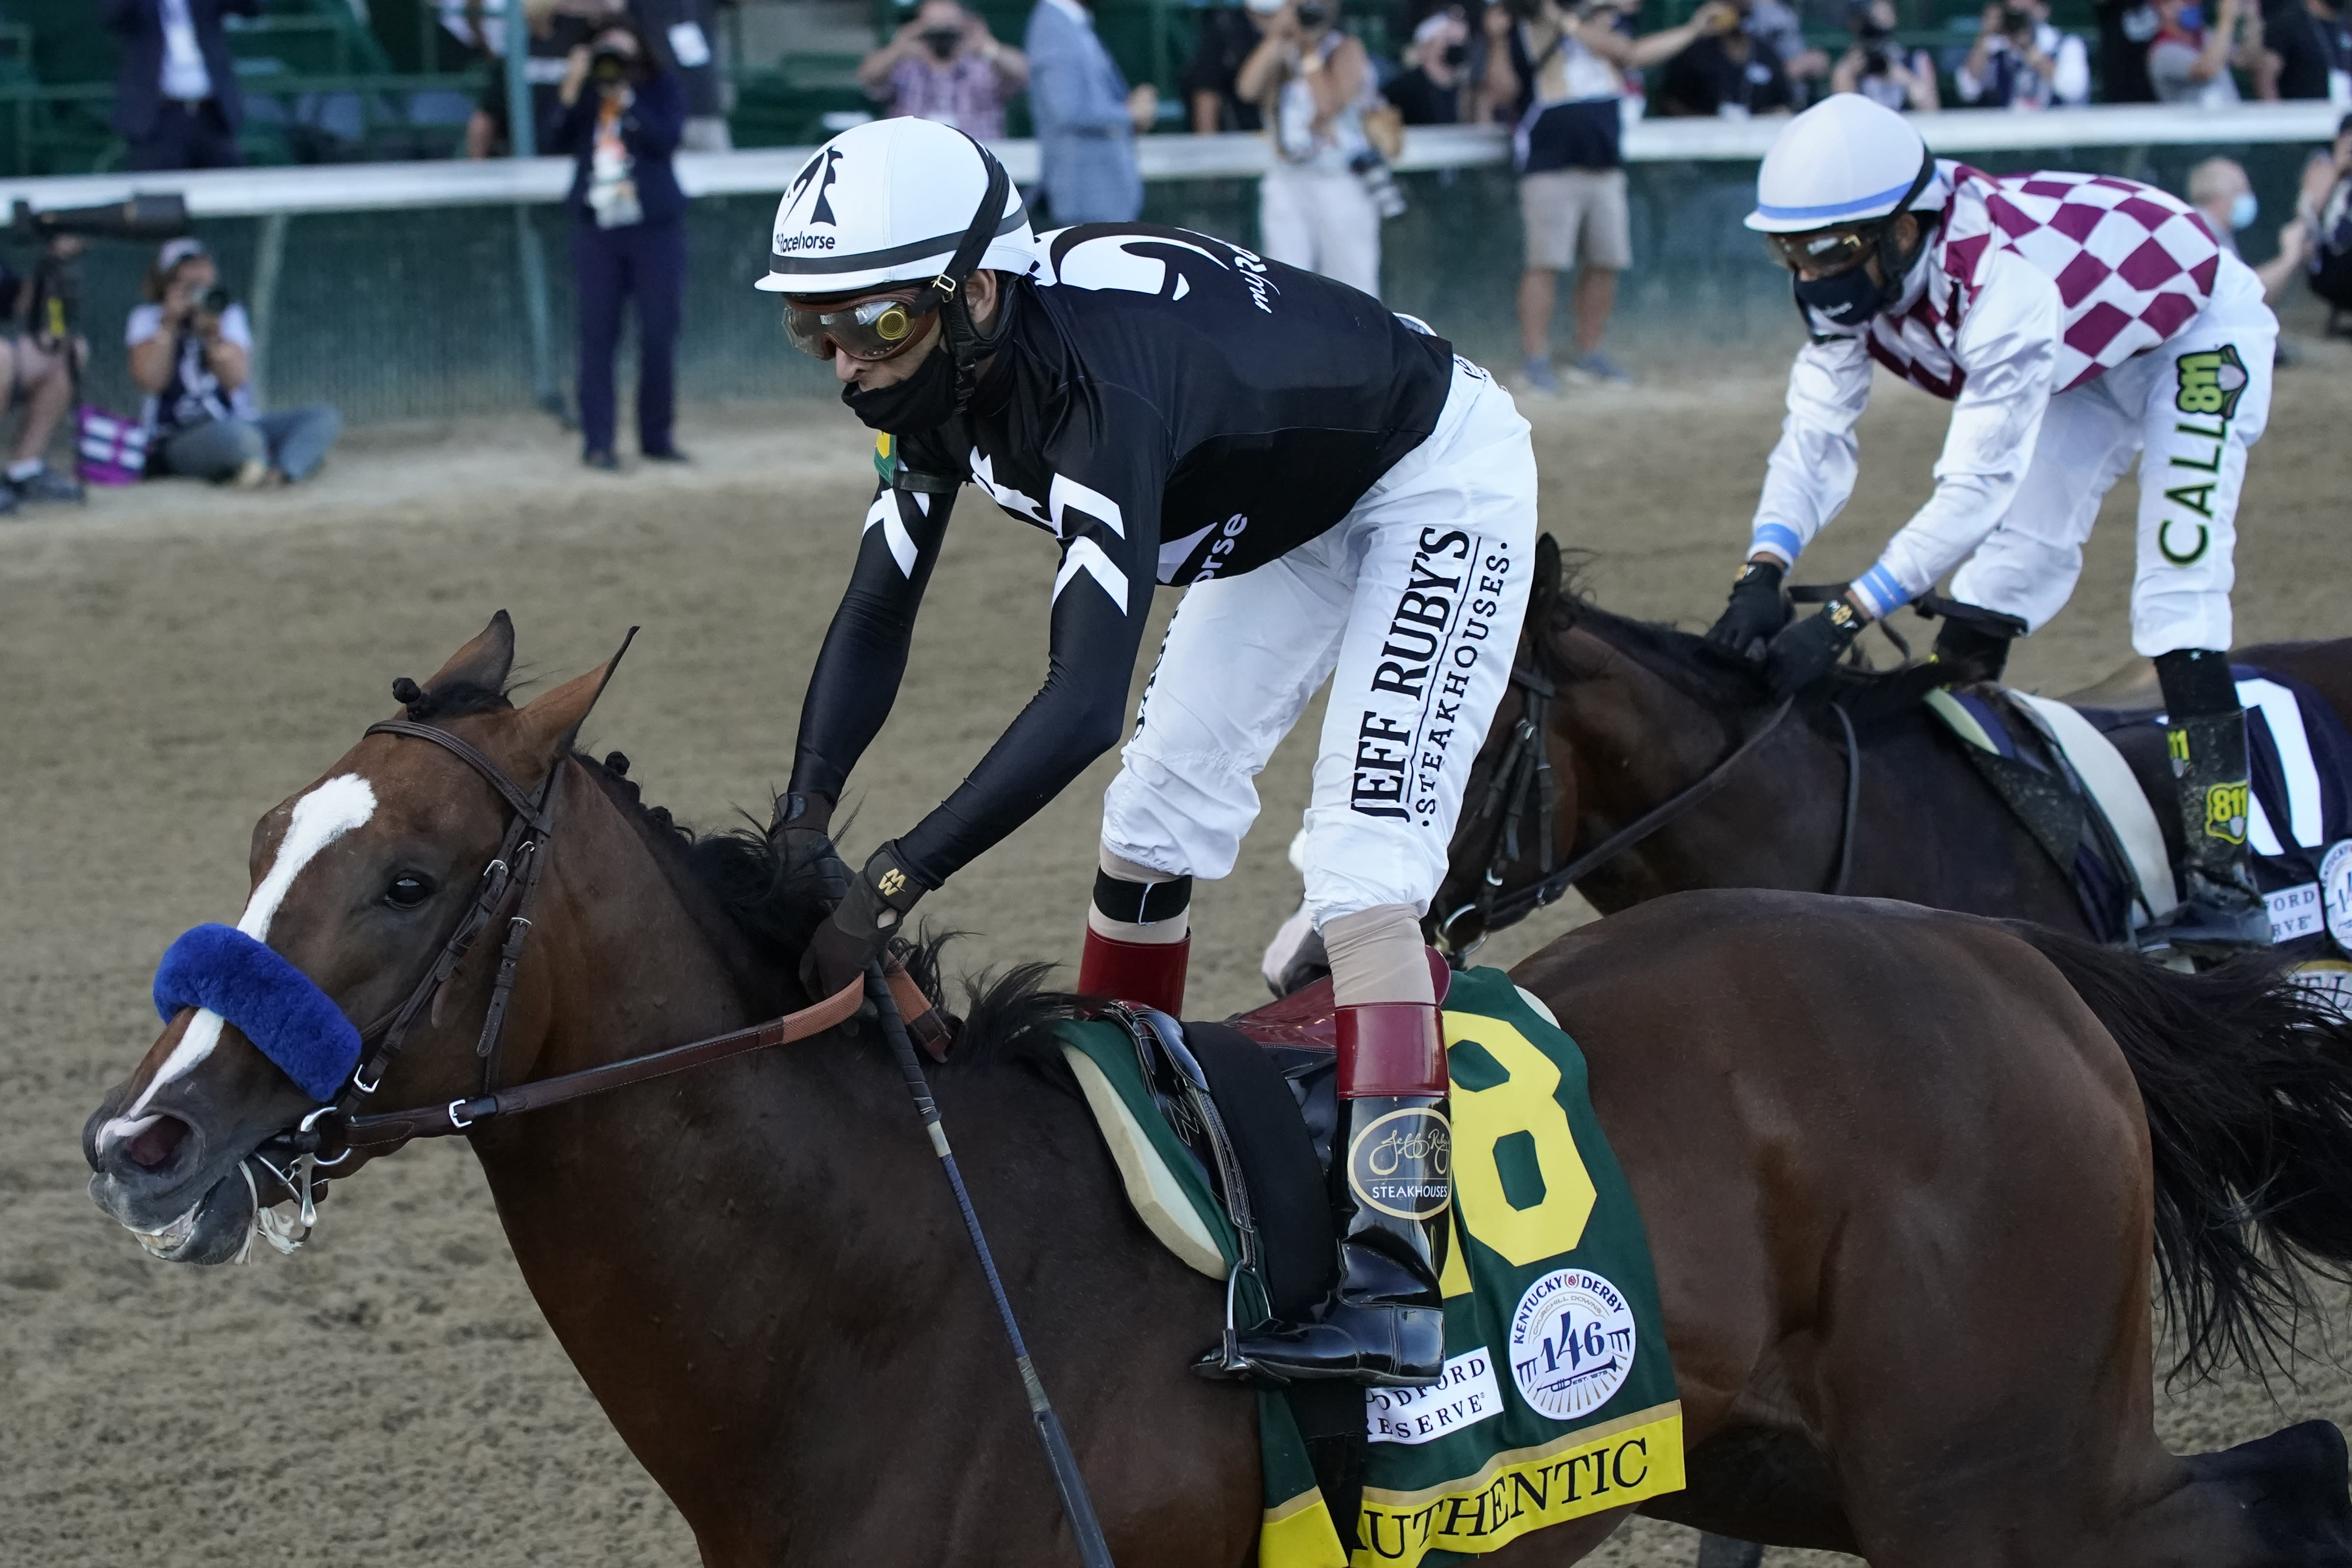 Jockey John Velazquez riding Authentic (18) crosses the finish line ahead of Jockey Manny Franco riding Tiz the Law to win the 146th running of the Kentucky Derby at Churchill Downs, Saturday, Sept. 5, 2020, in Louisville, Ky. (AP Photo/Jeff Roberson)